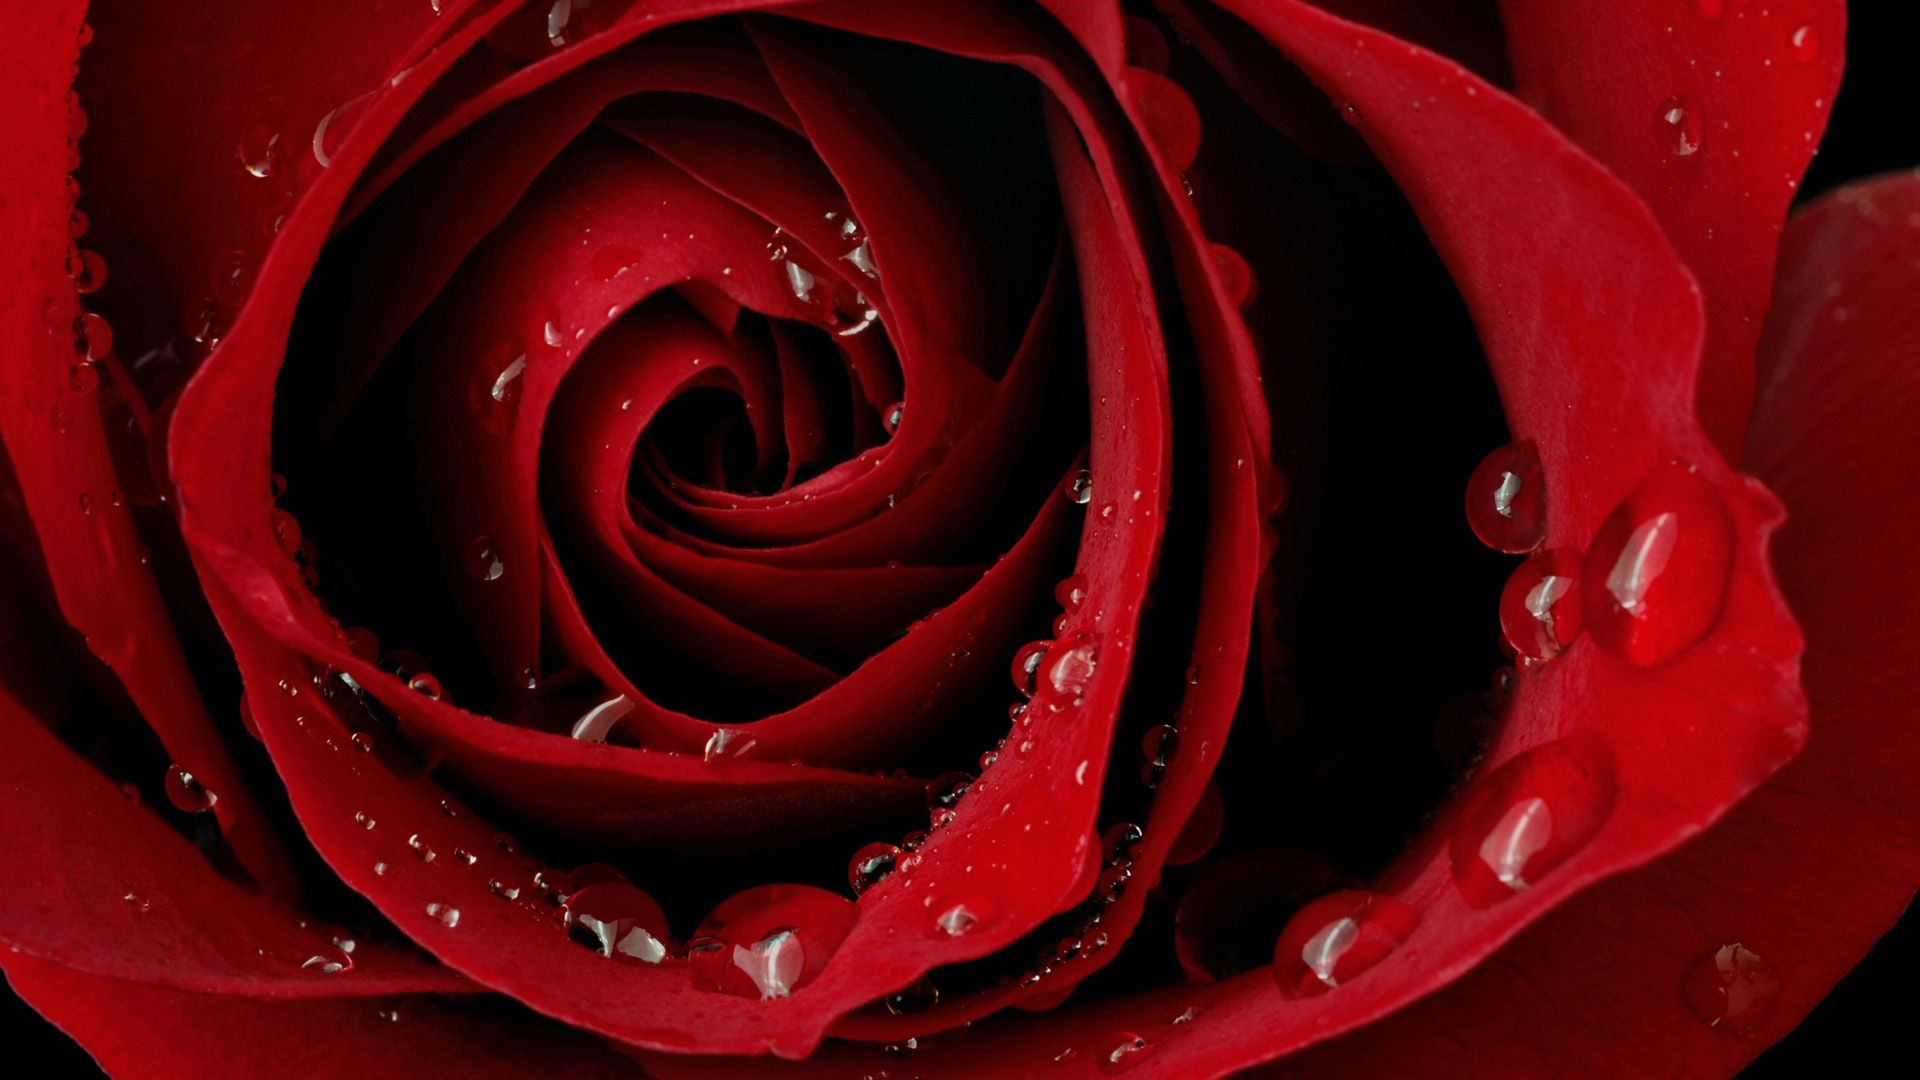 Rose Hd Full Screen 2 Wallpaper Rose Flower Images Rose Pictures And Backgrounds Rose Wallpaper Red Roses Background Red Roses